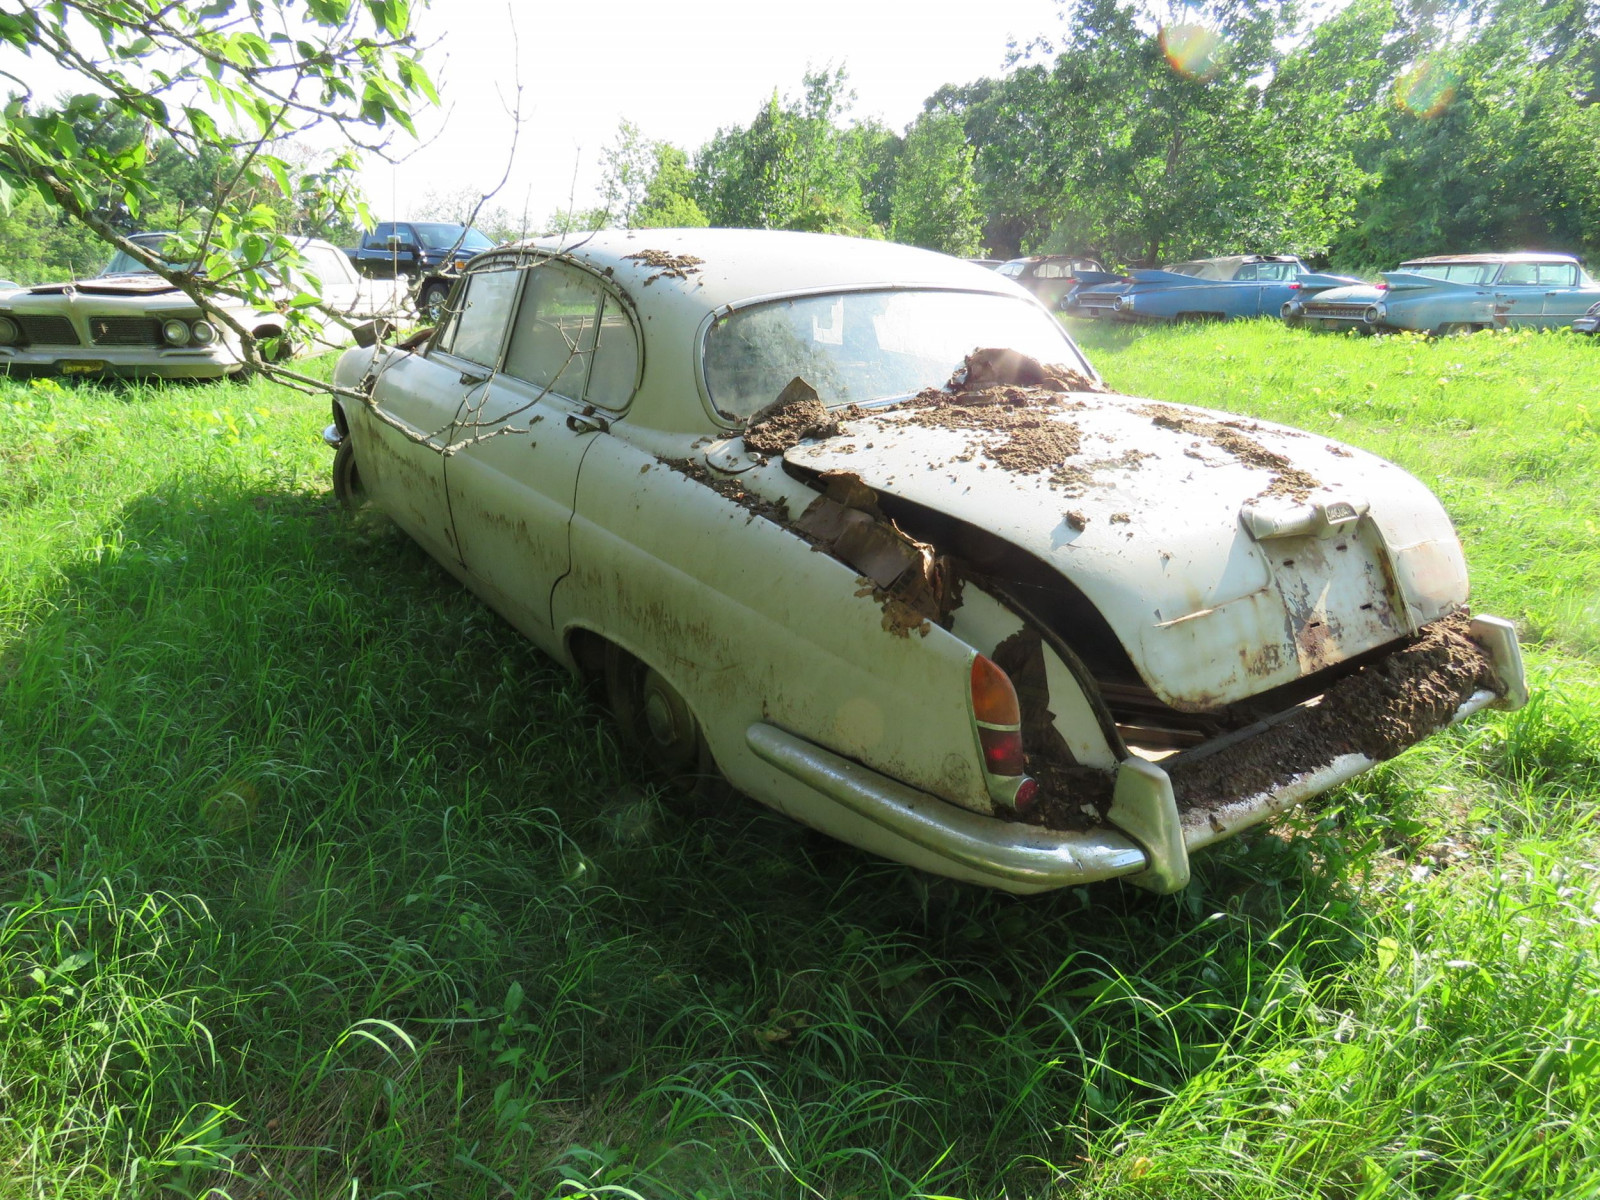 1965 Jaguar Mark X 4dr Sedan Project - Image 4